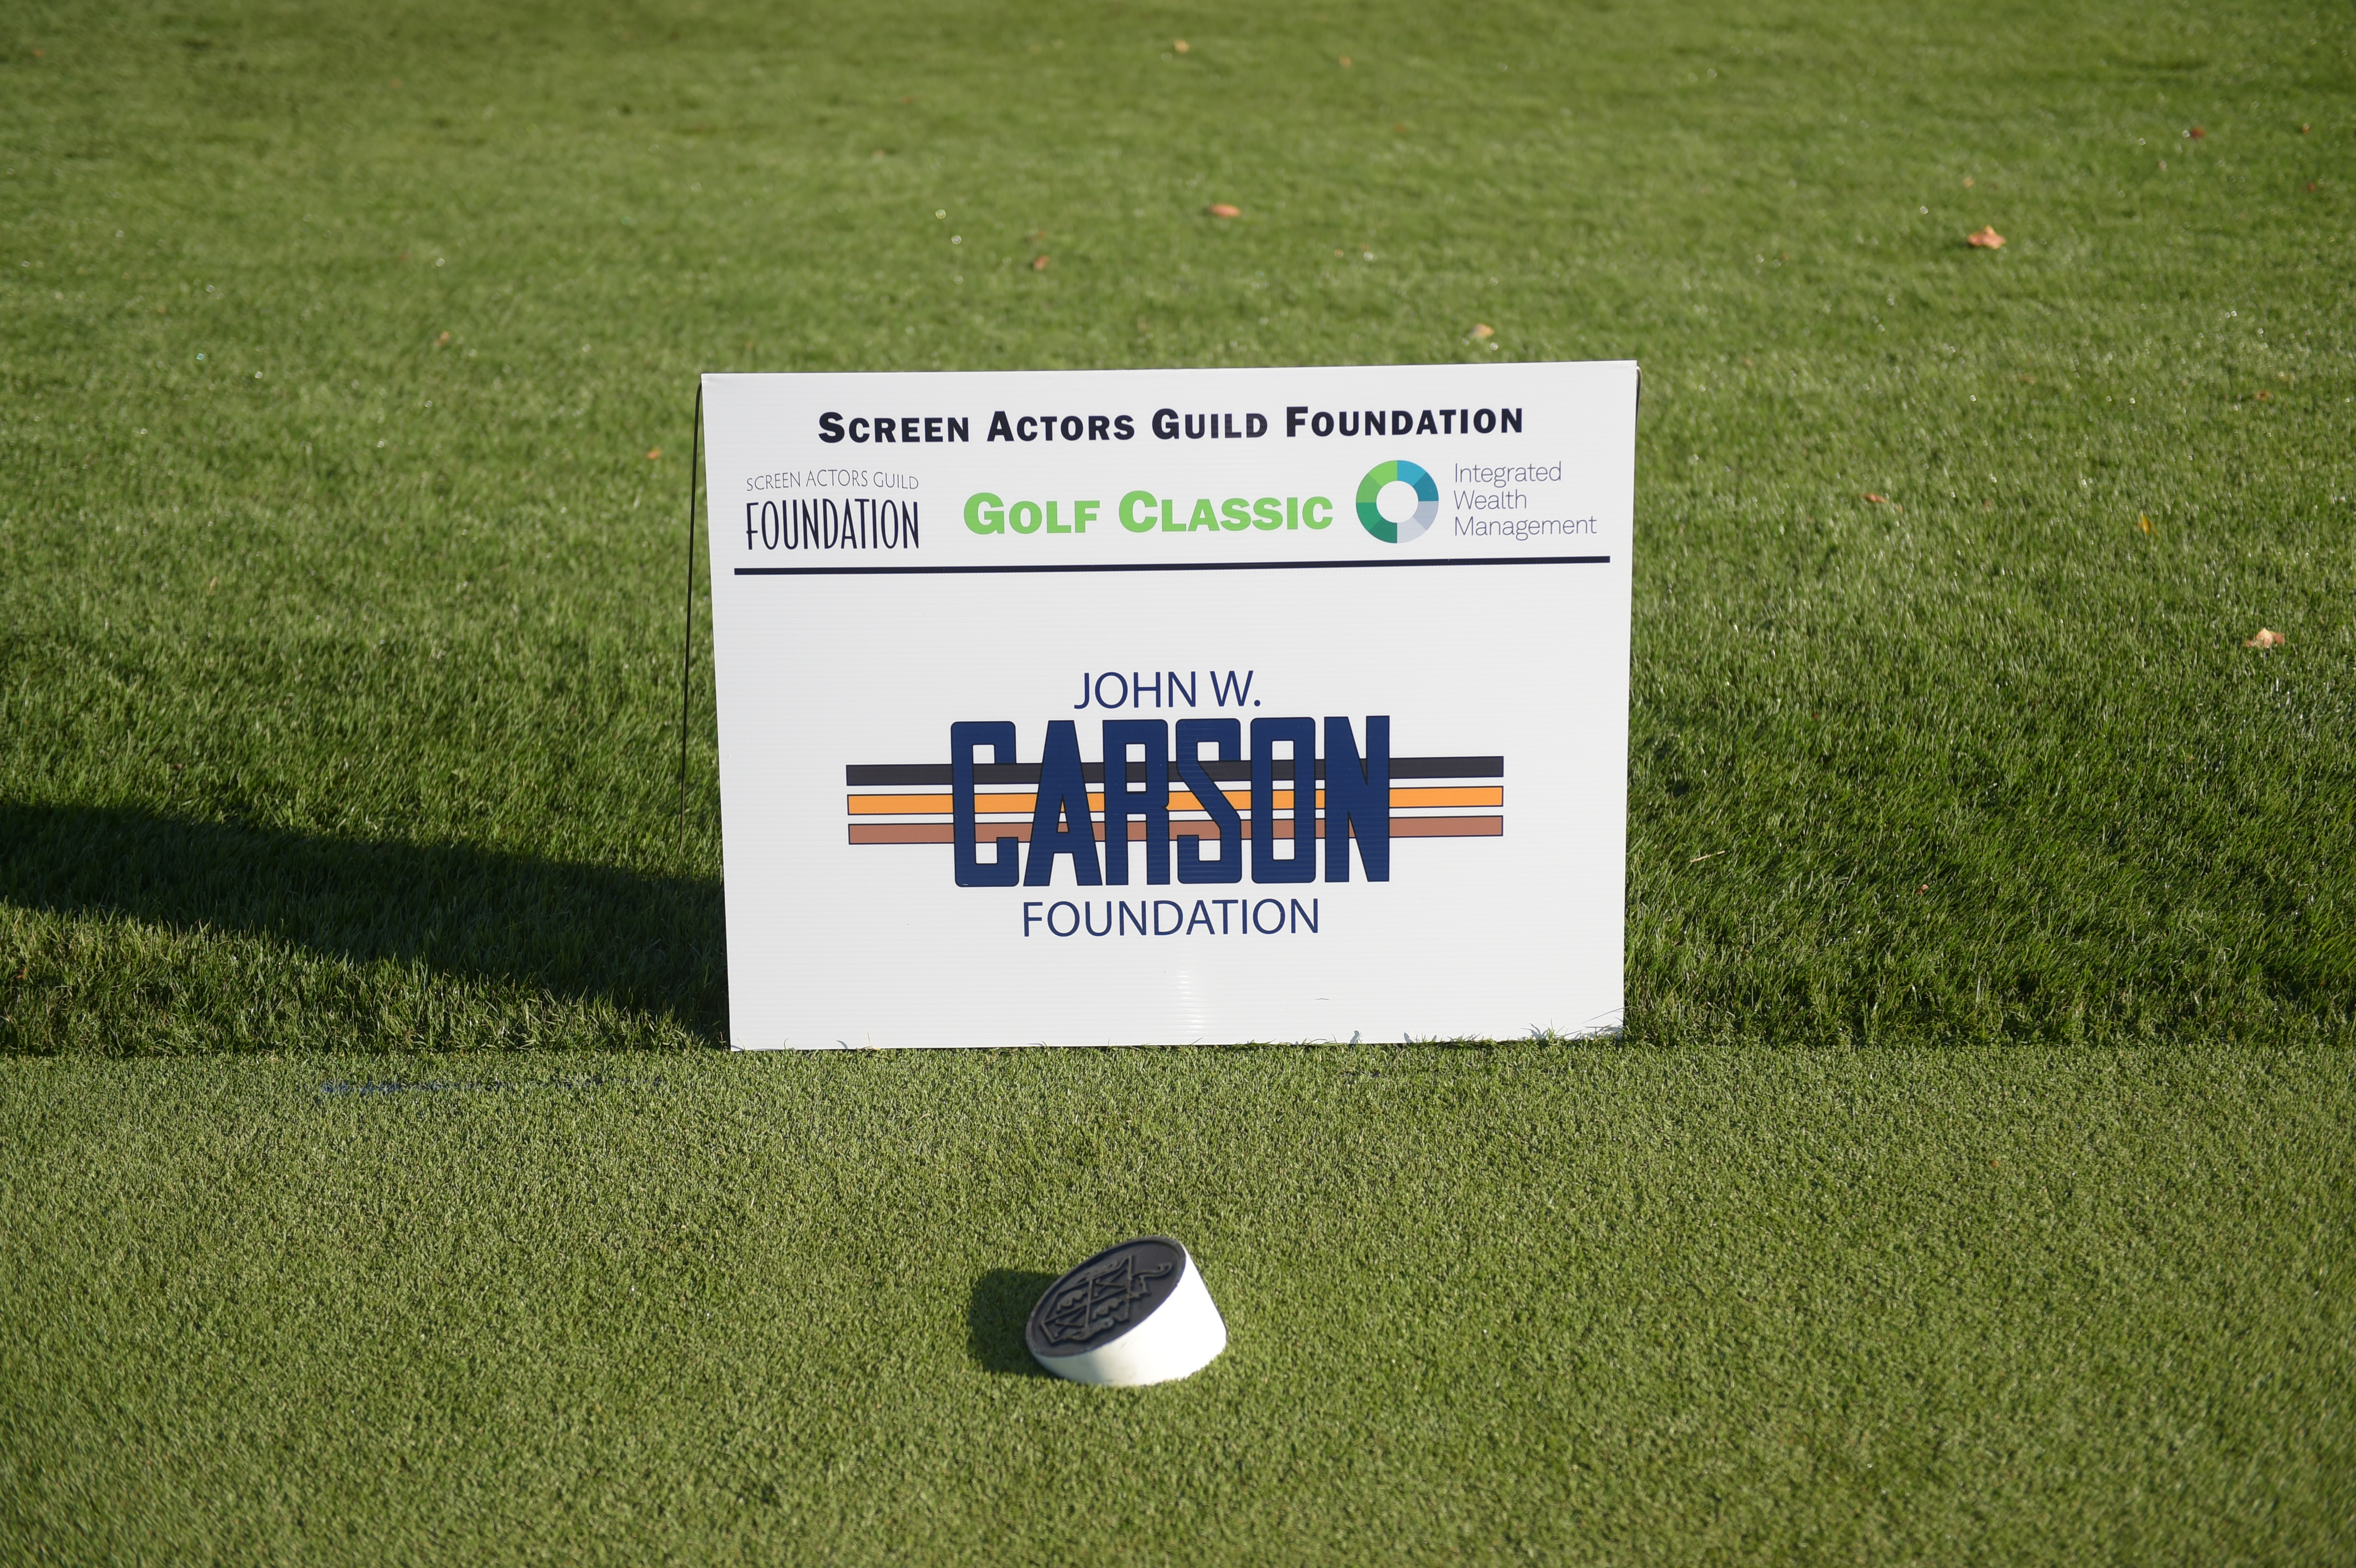 John W. Carson Foundation sponsors The Screen Actors Guild Foundation's 6th Annual Los Angeles Golf Classic. (Photo by Jason Kempin/Getty Images for The Screen Actors Guild Foundation)